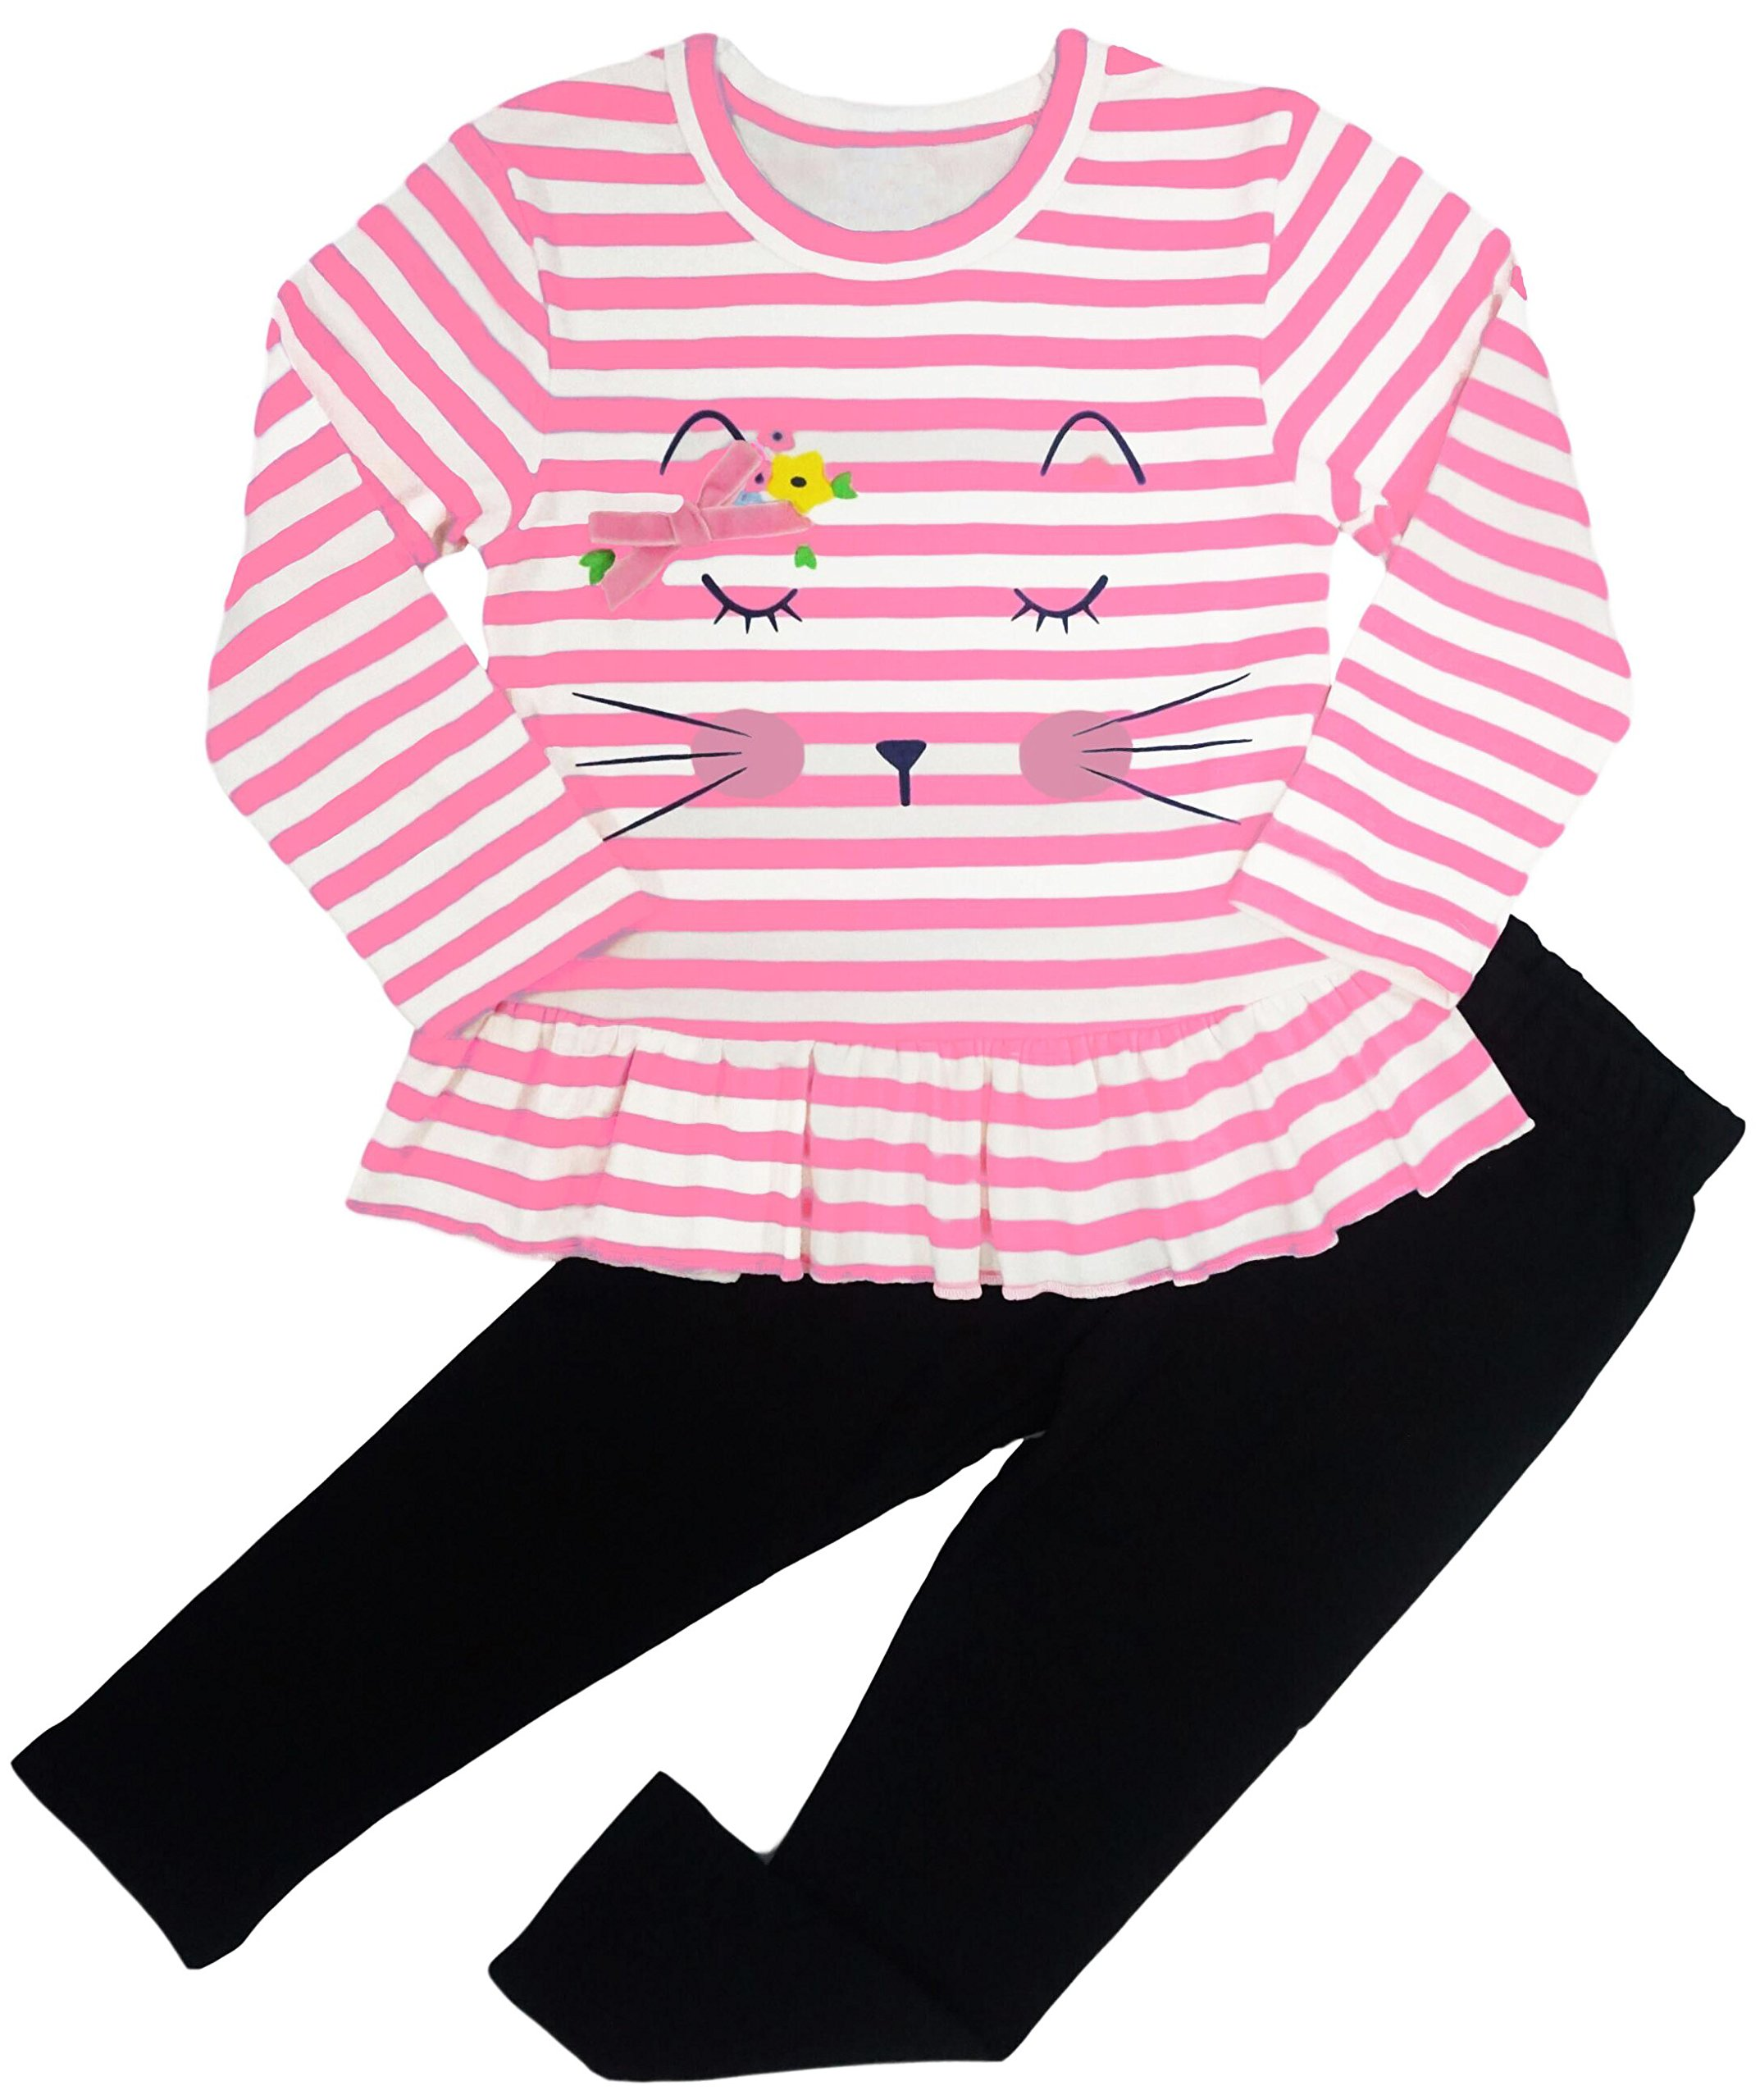 BomDeals Adorable Cute Toddler Baby Girl Clothing 2pcs Outfits (Age(2T), Strip/Pink)